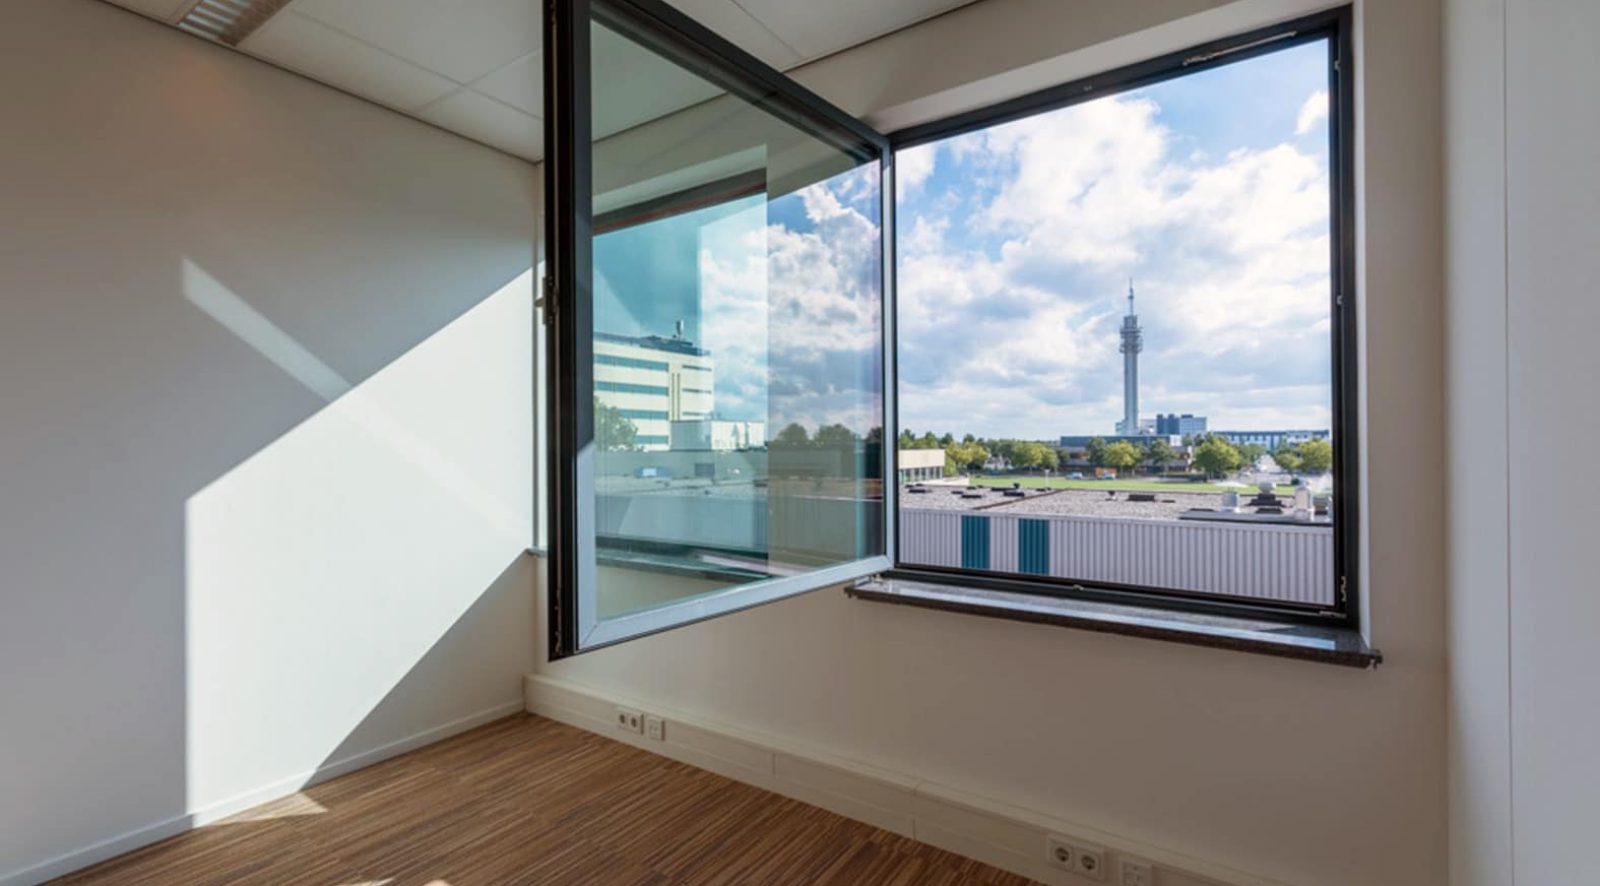 Kantoor huren in Haarlem | Crown Business Center Haarlem II